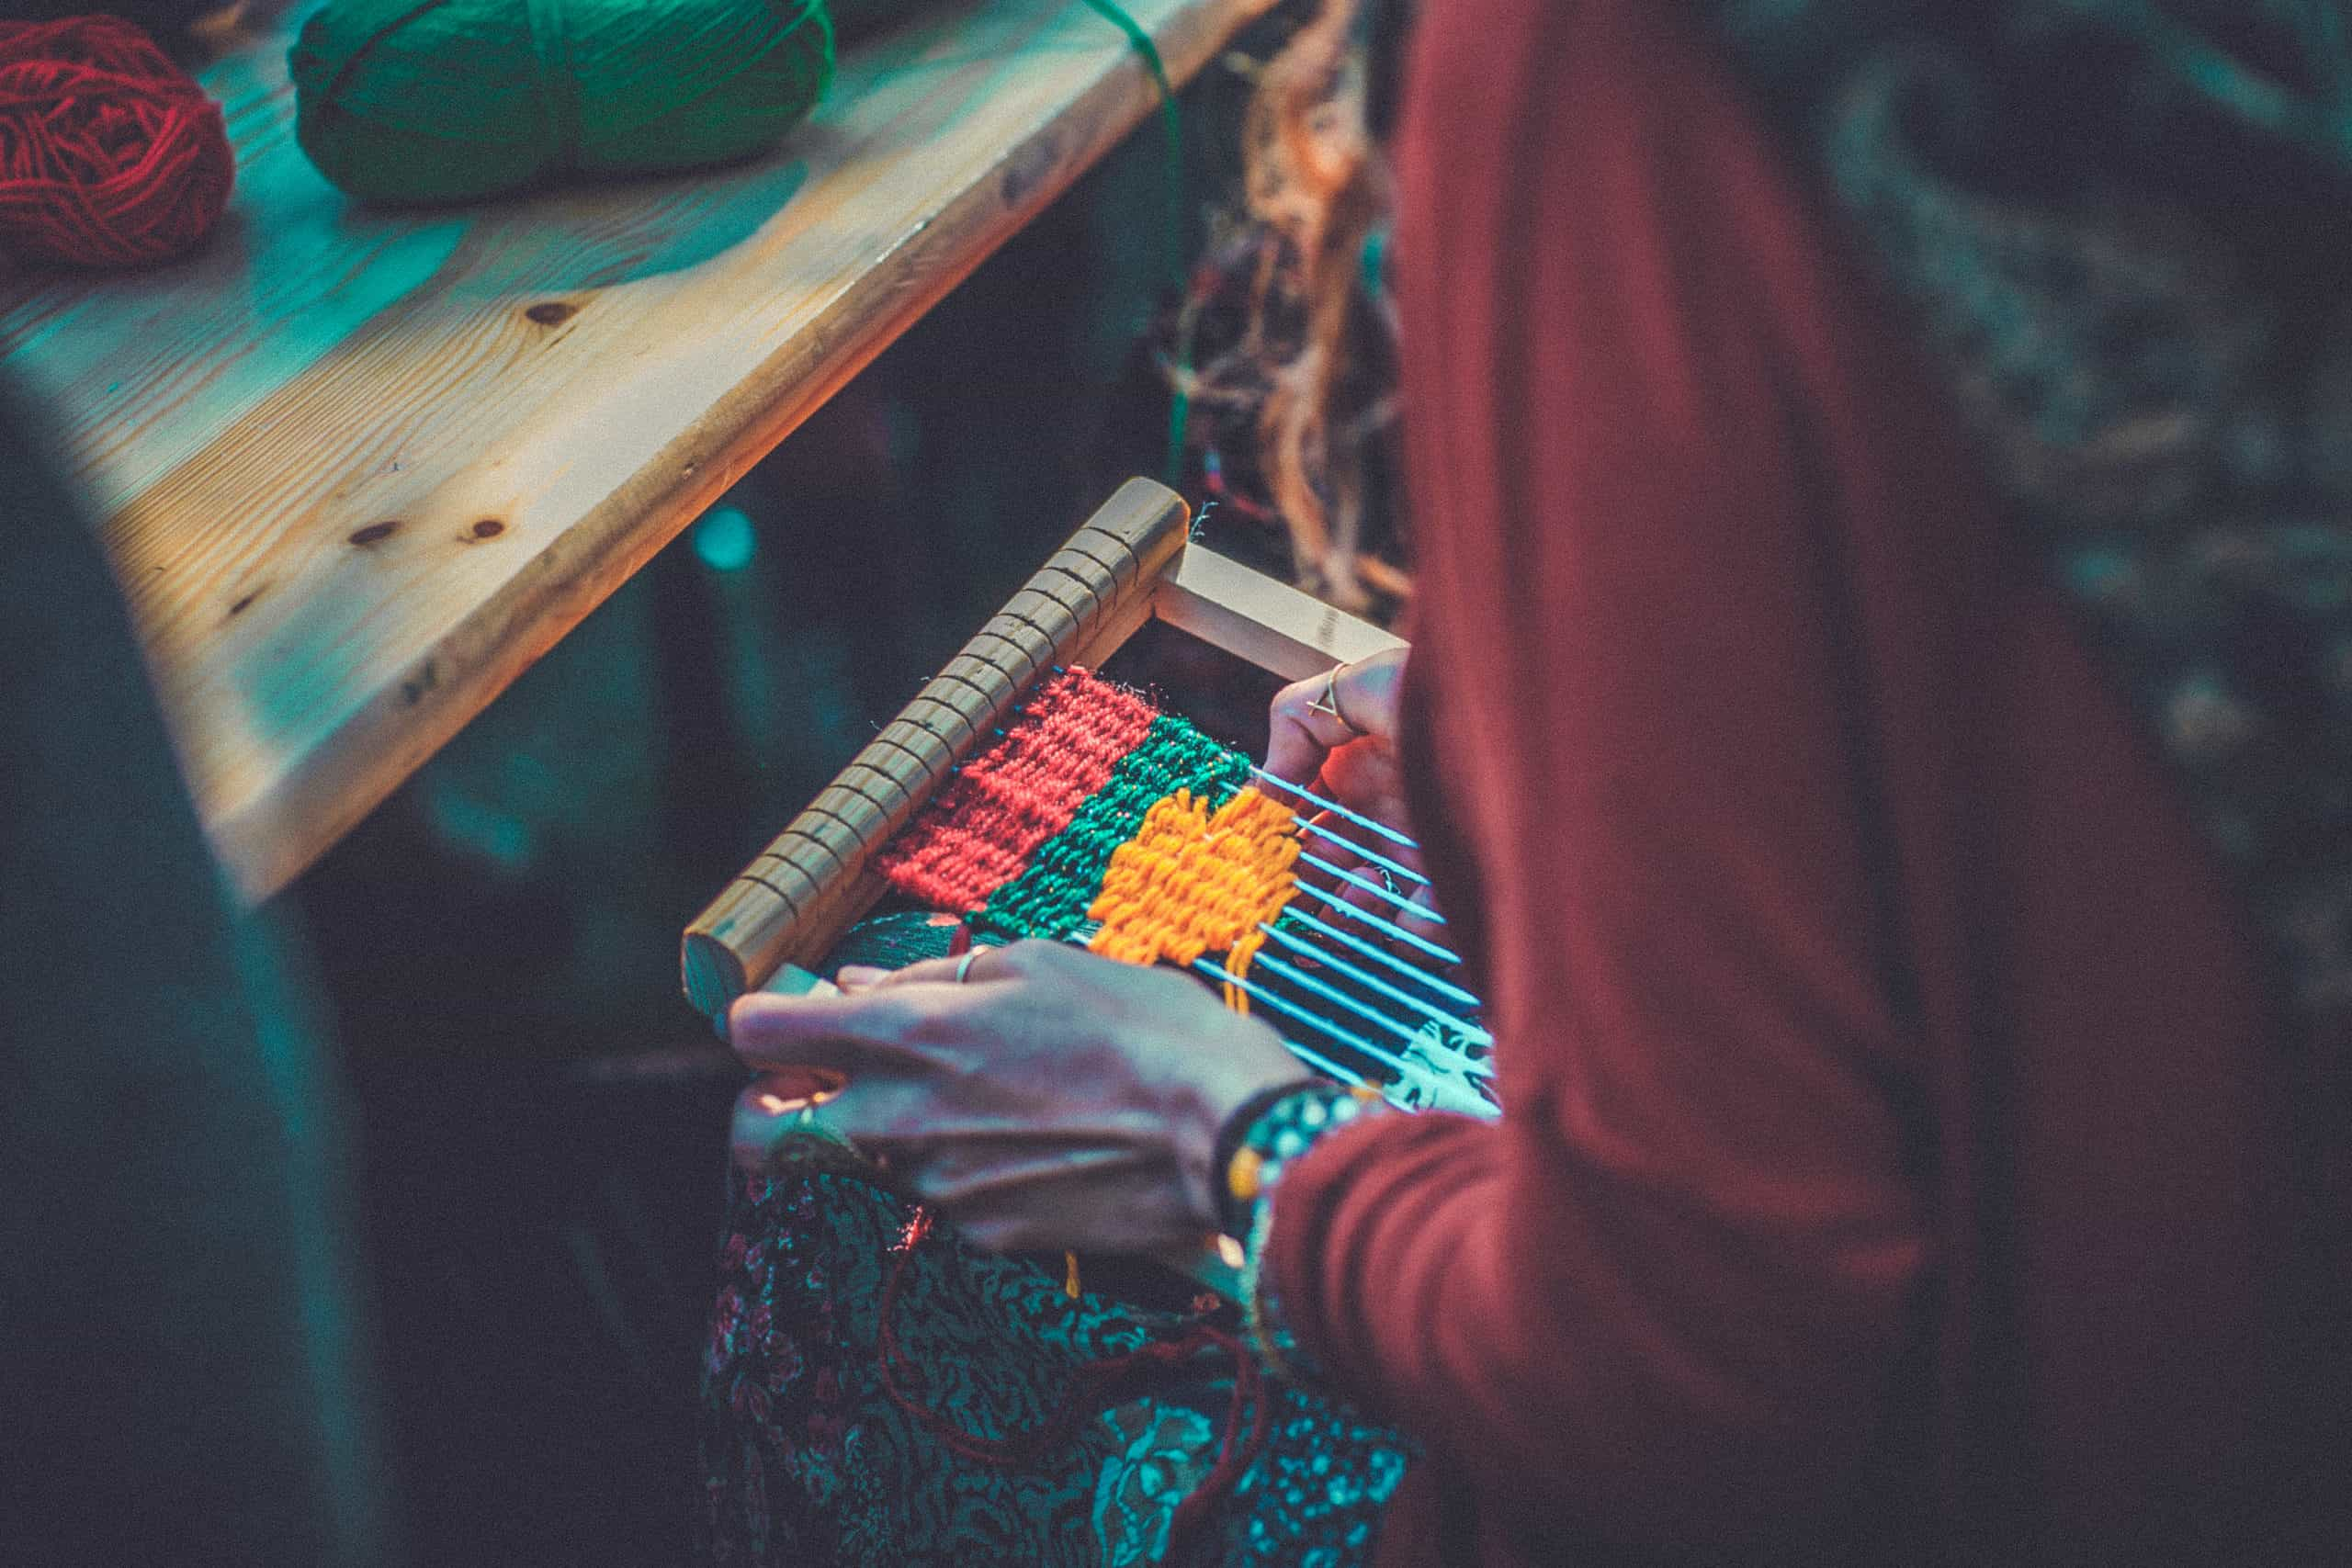 Close up of someone weaving at Camp Wildfire. A summer weekend break in a forest near London and Kent. An outdoor woodland retreat featuring adventure activities, live music, DJs, parties and camping. Half summer adventure activity camp, half music festival, for adults only.